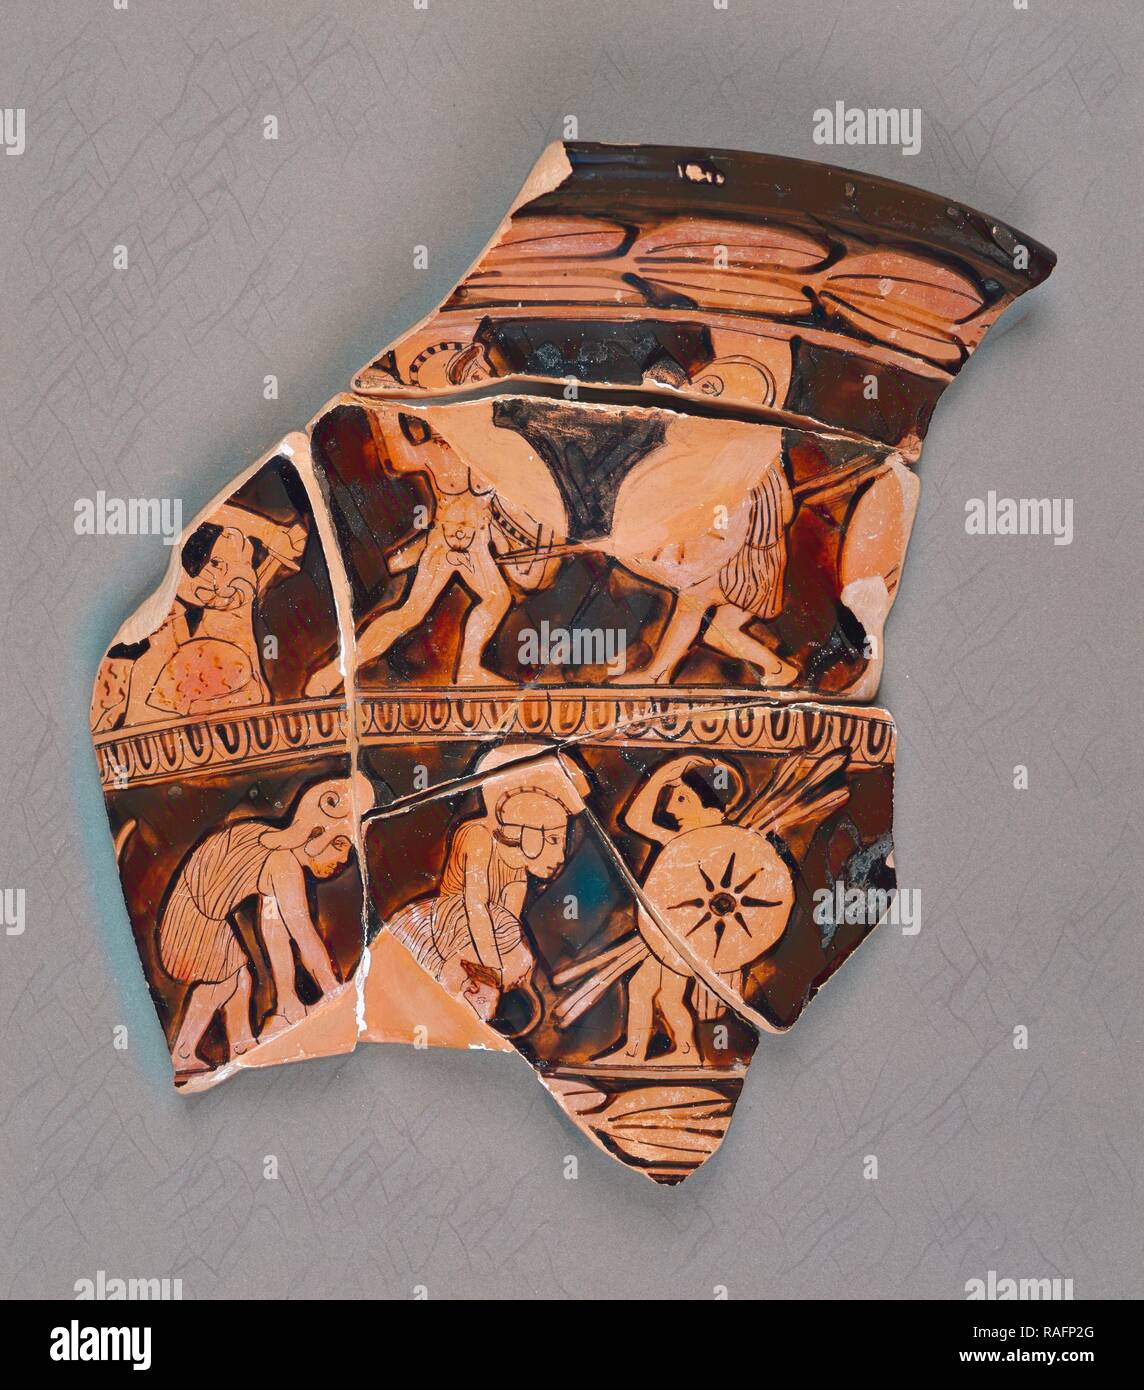 Attic Red-Figure Calyx Krater Fragment, Athens, Greece, about 430 B.C, Terracotta. Reimagined by Gibon. Classic art reimagined - Stock Image